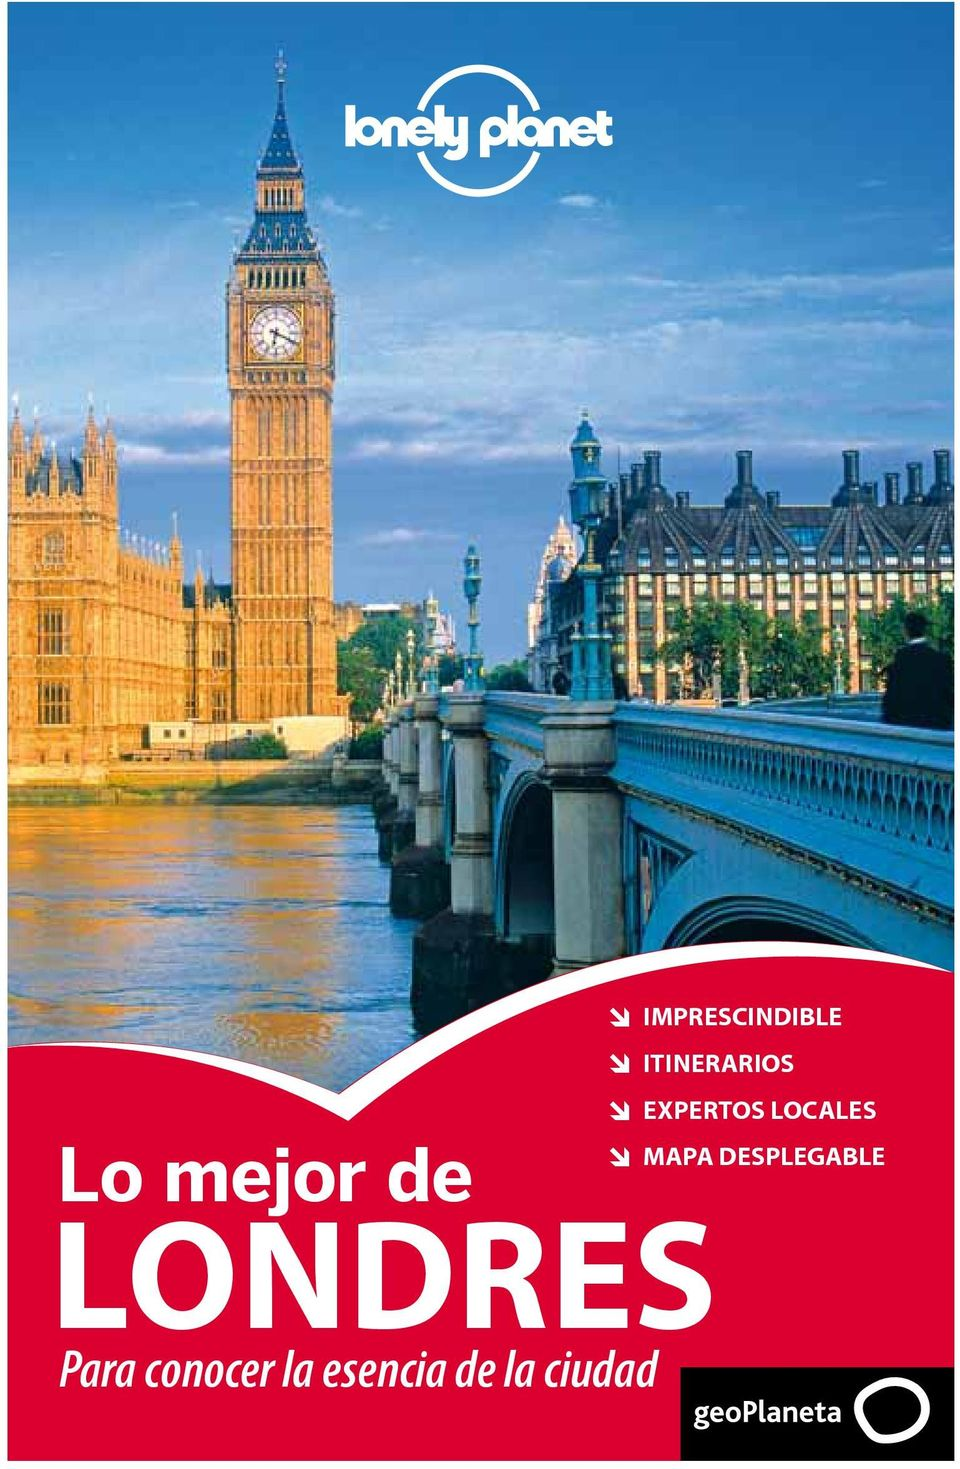 de la ciudad Experience the best of